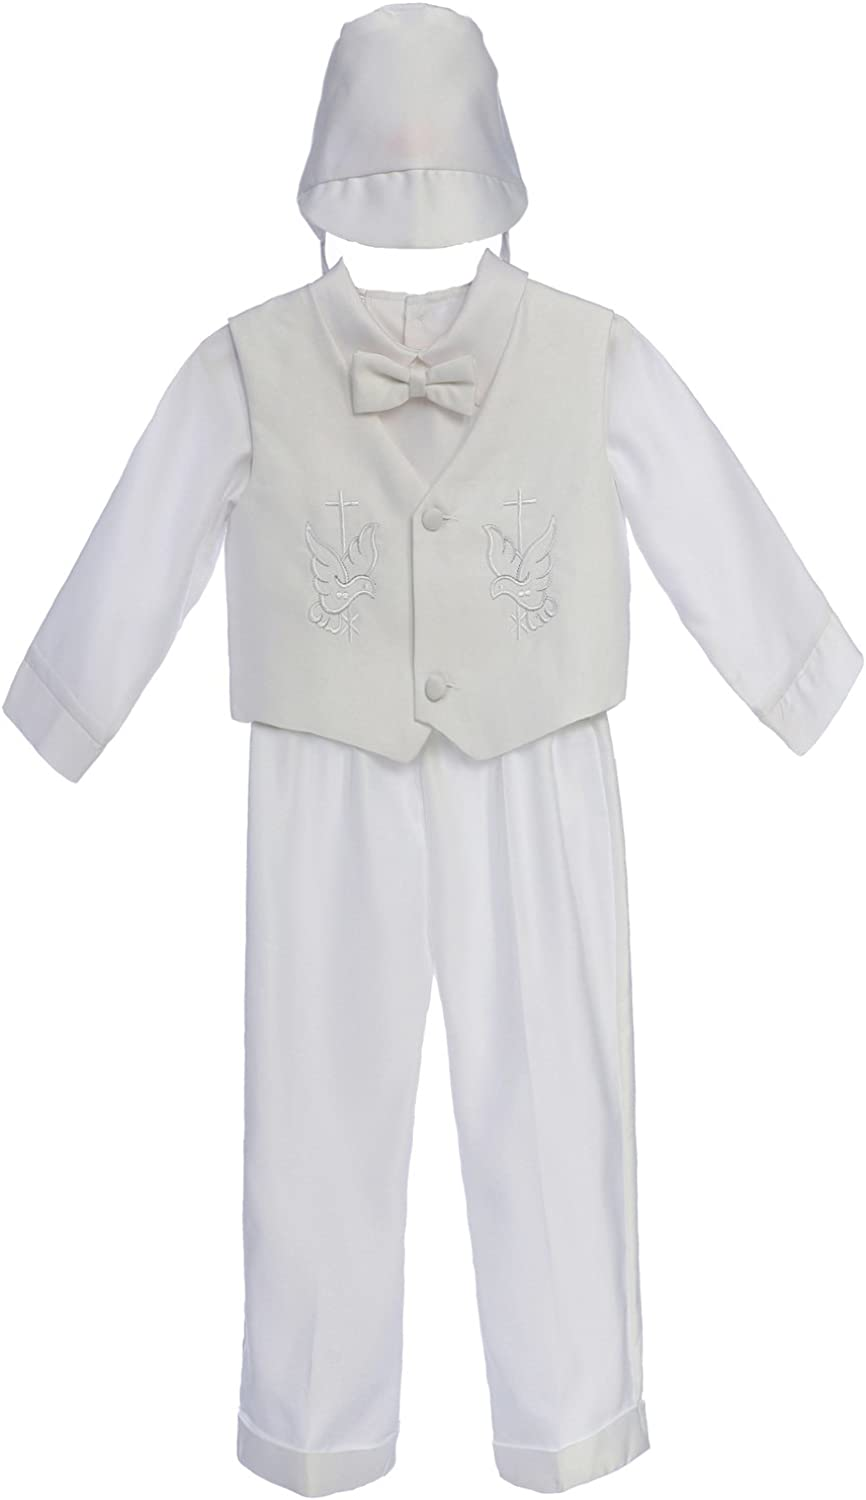 0M-36M Unotux Baby Boy Christening Baptism White Long Vest Set Suit